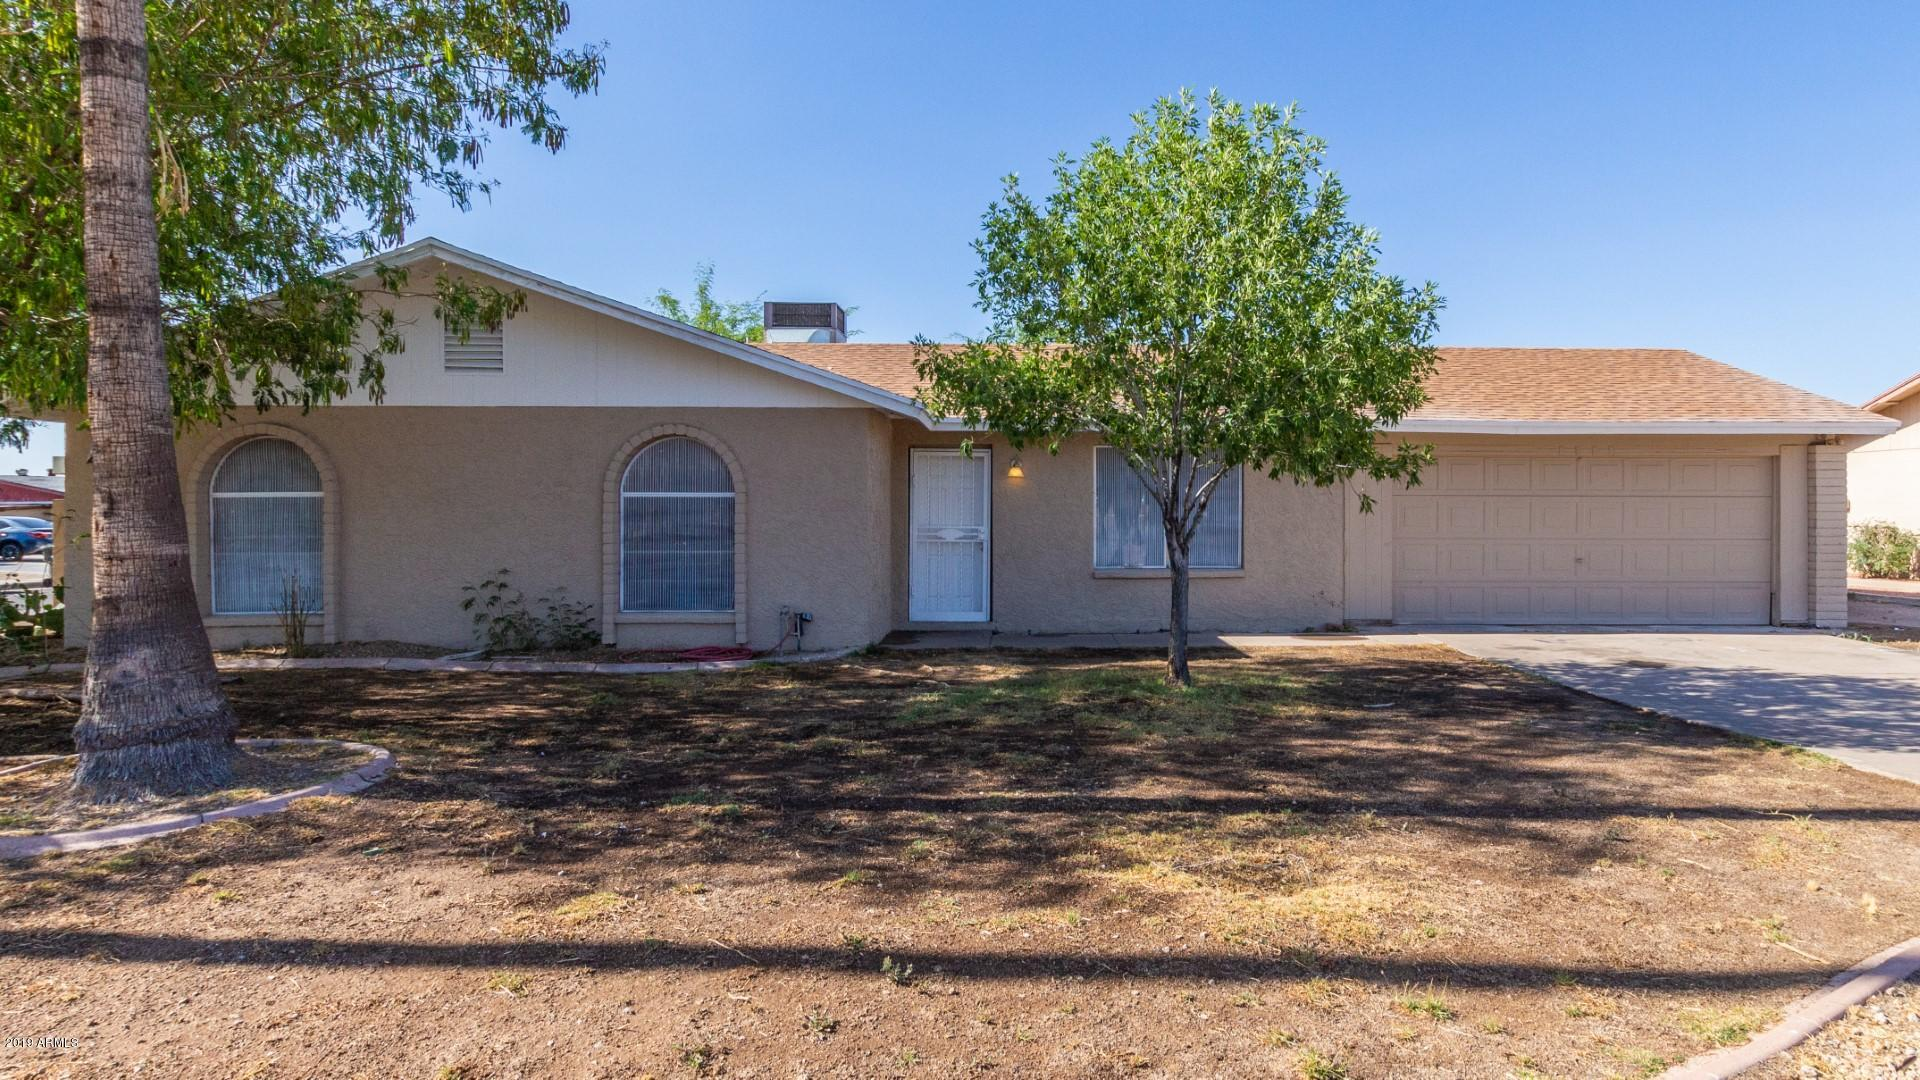 Photo for 1902 E Desert Drive, Phoenix, AZ 85042 (MLS # 5934911)